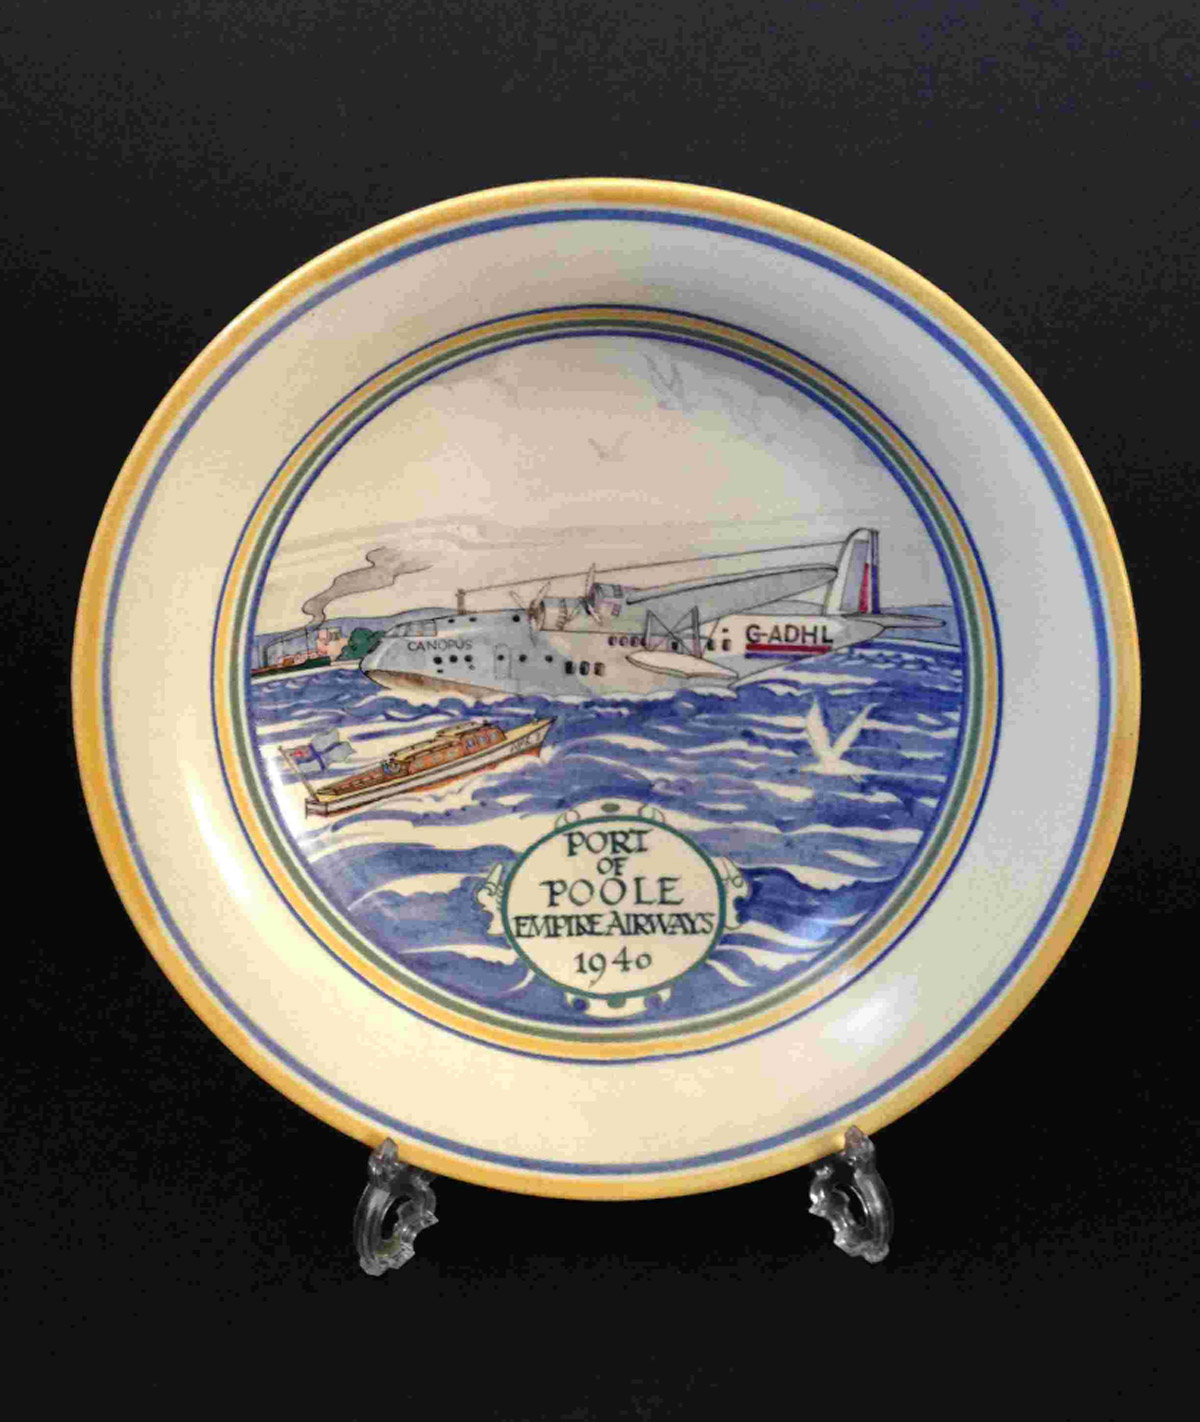 The Port of Poole Empire Airways dish that will go up for auction